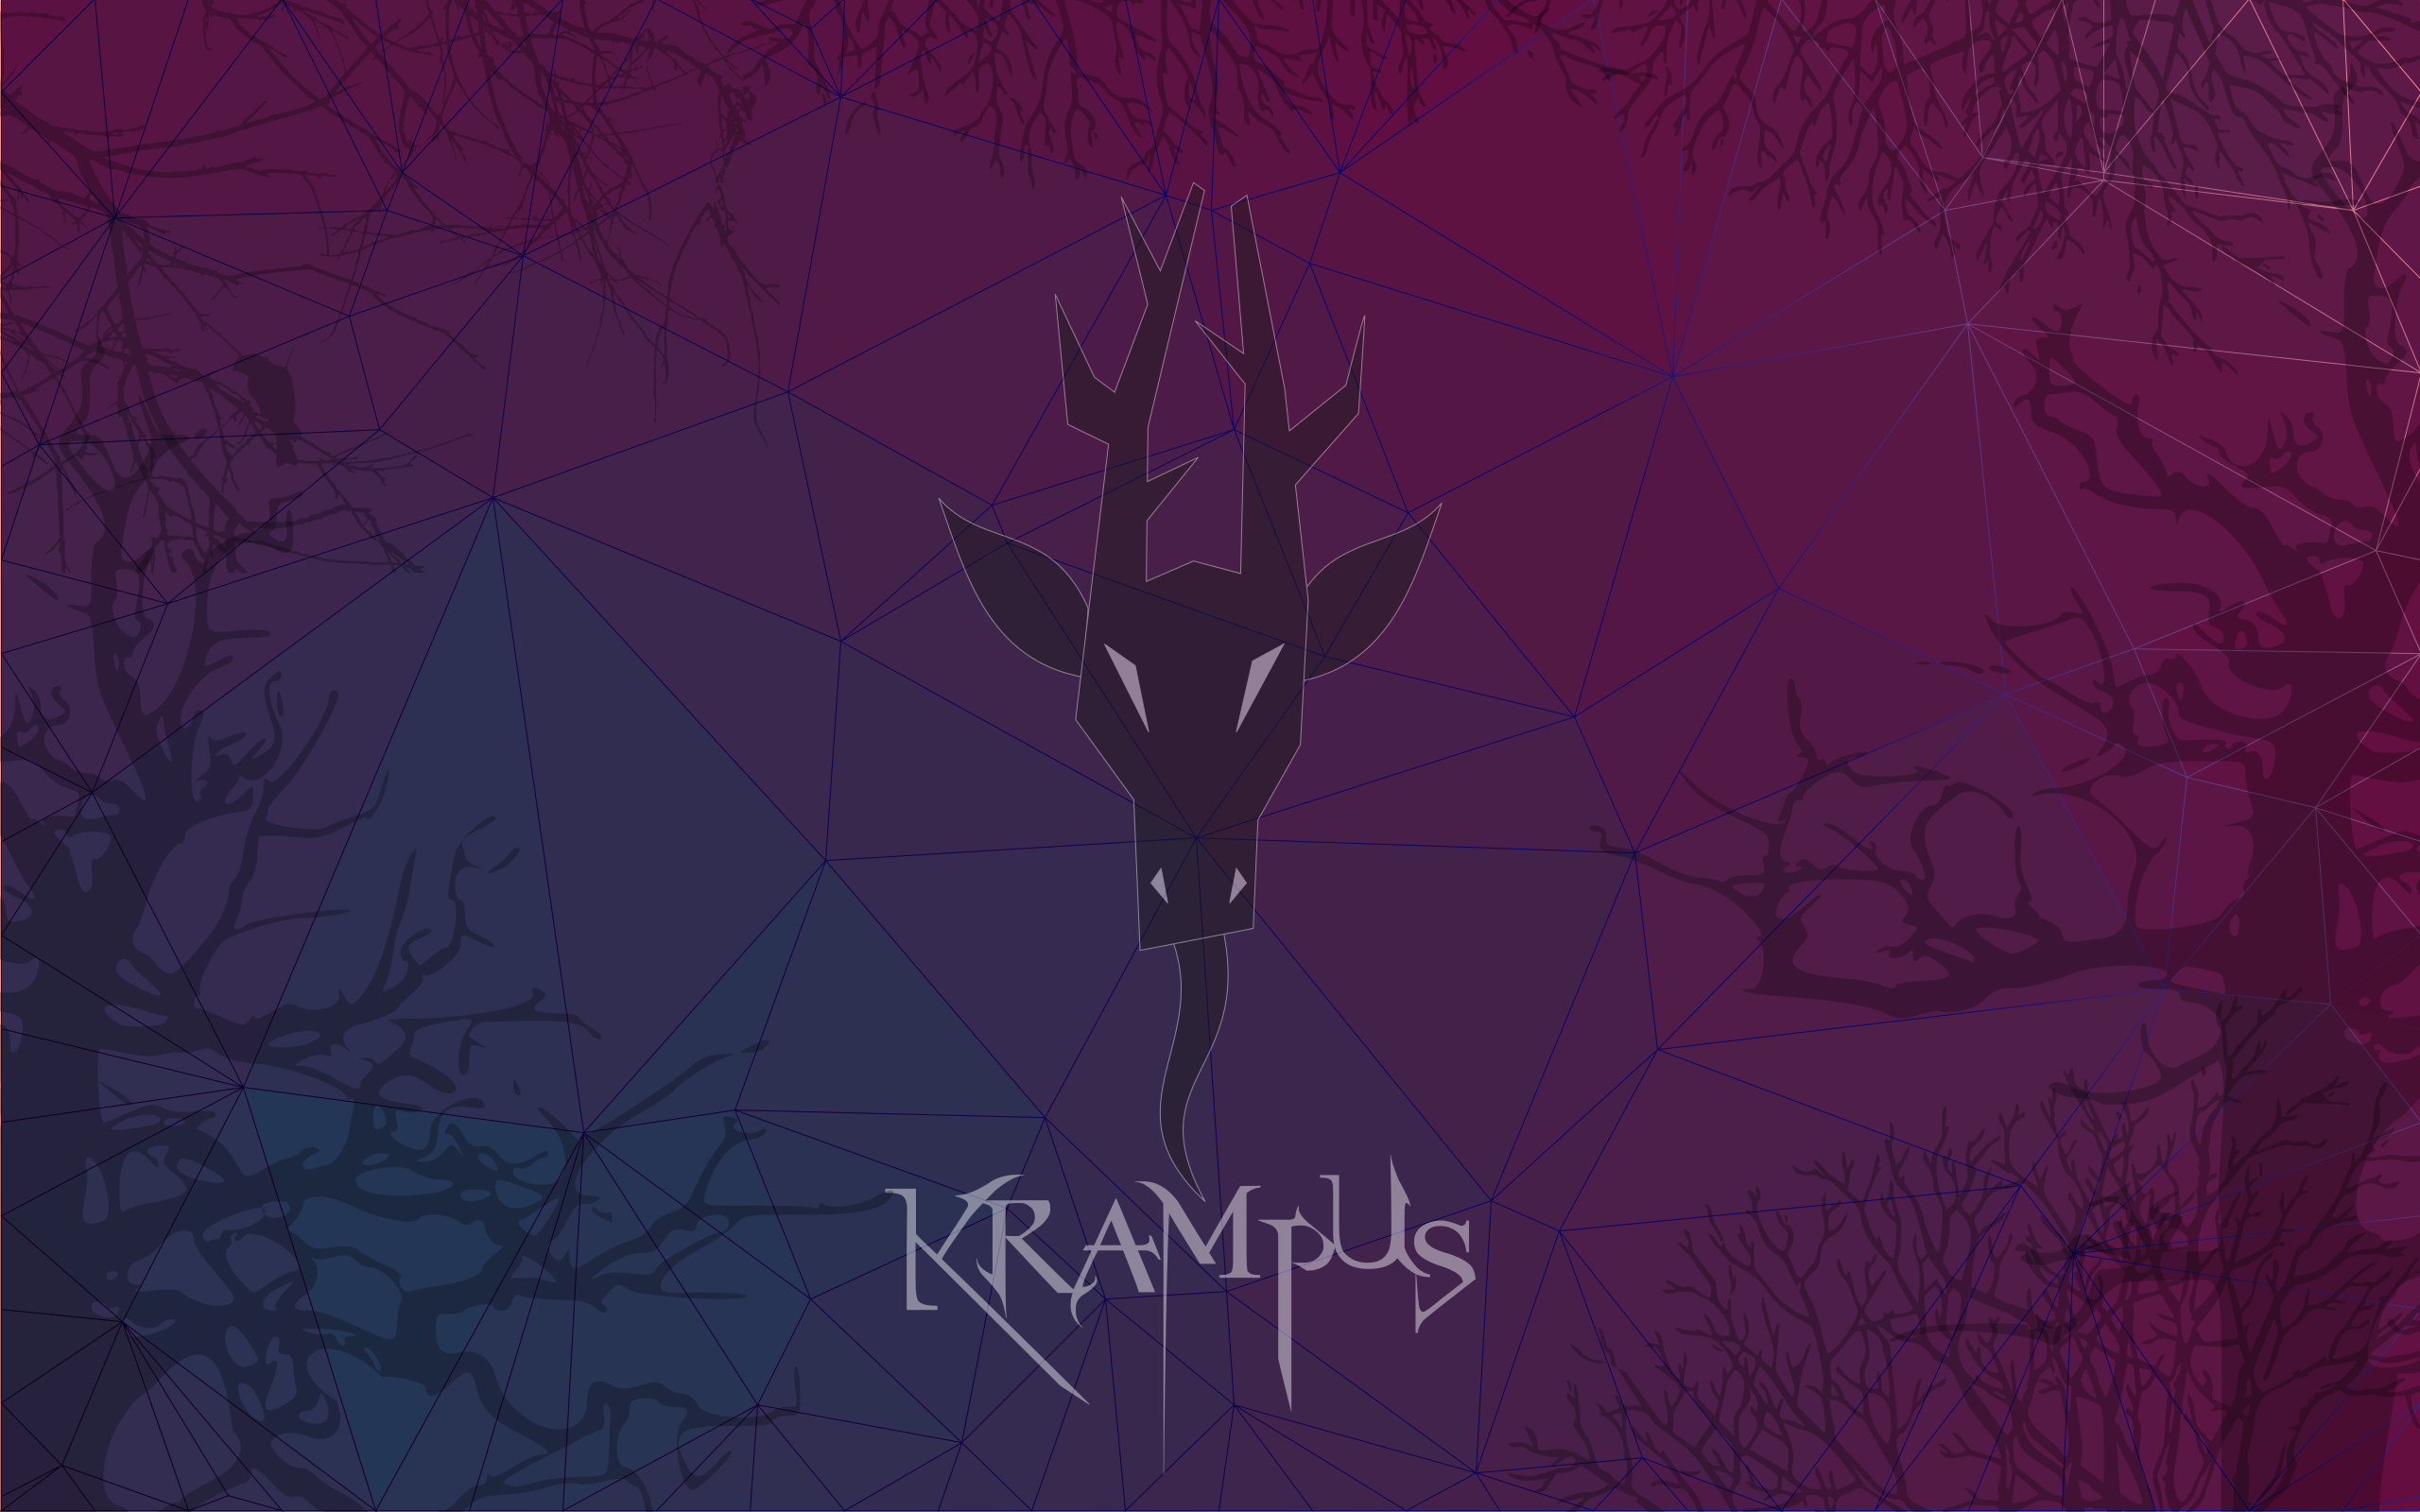 ... , the 5th of December, with Krampuslauf fest. Christmas begins